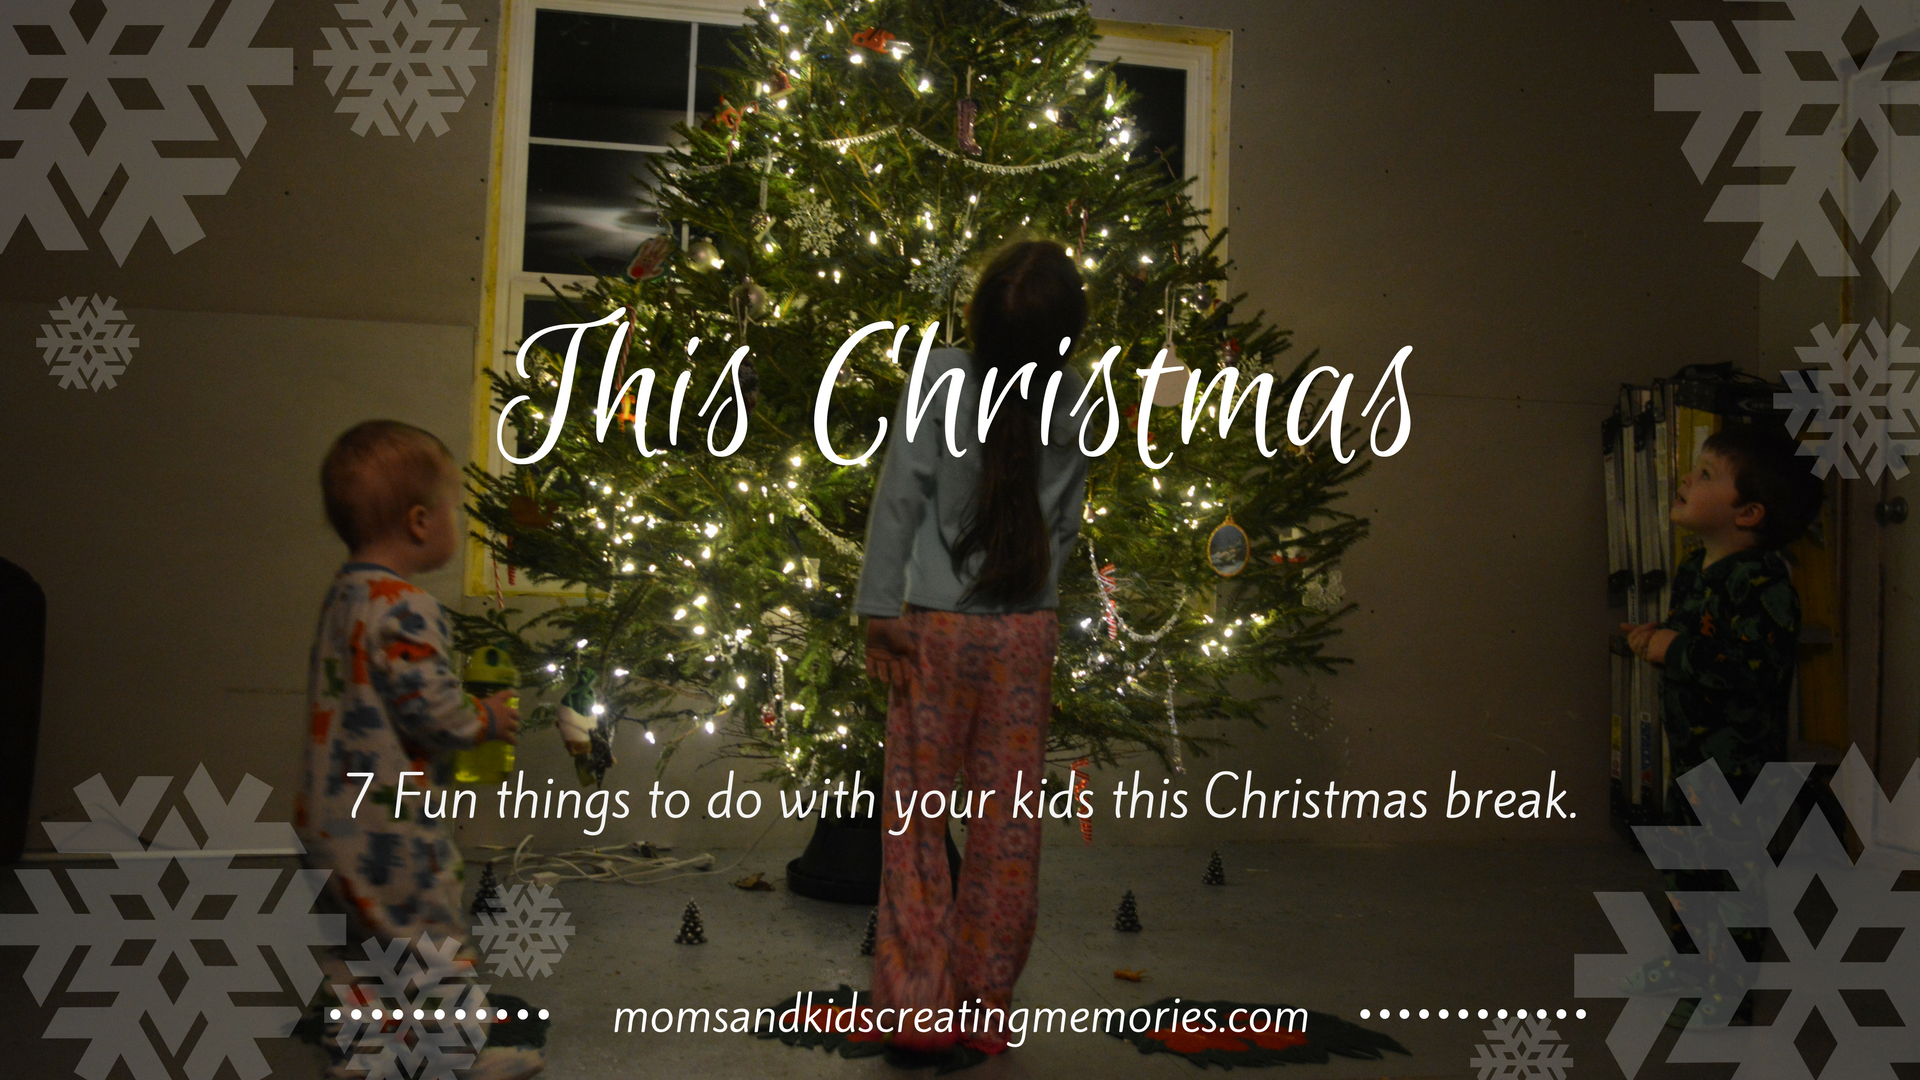 This Christmas - try out one or all of these 7 fun things to do with your kids This Christmas break. My kids tested them all and loved all of them - try them with your kids and I am sure they will enjoy them too!